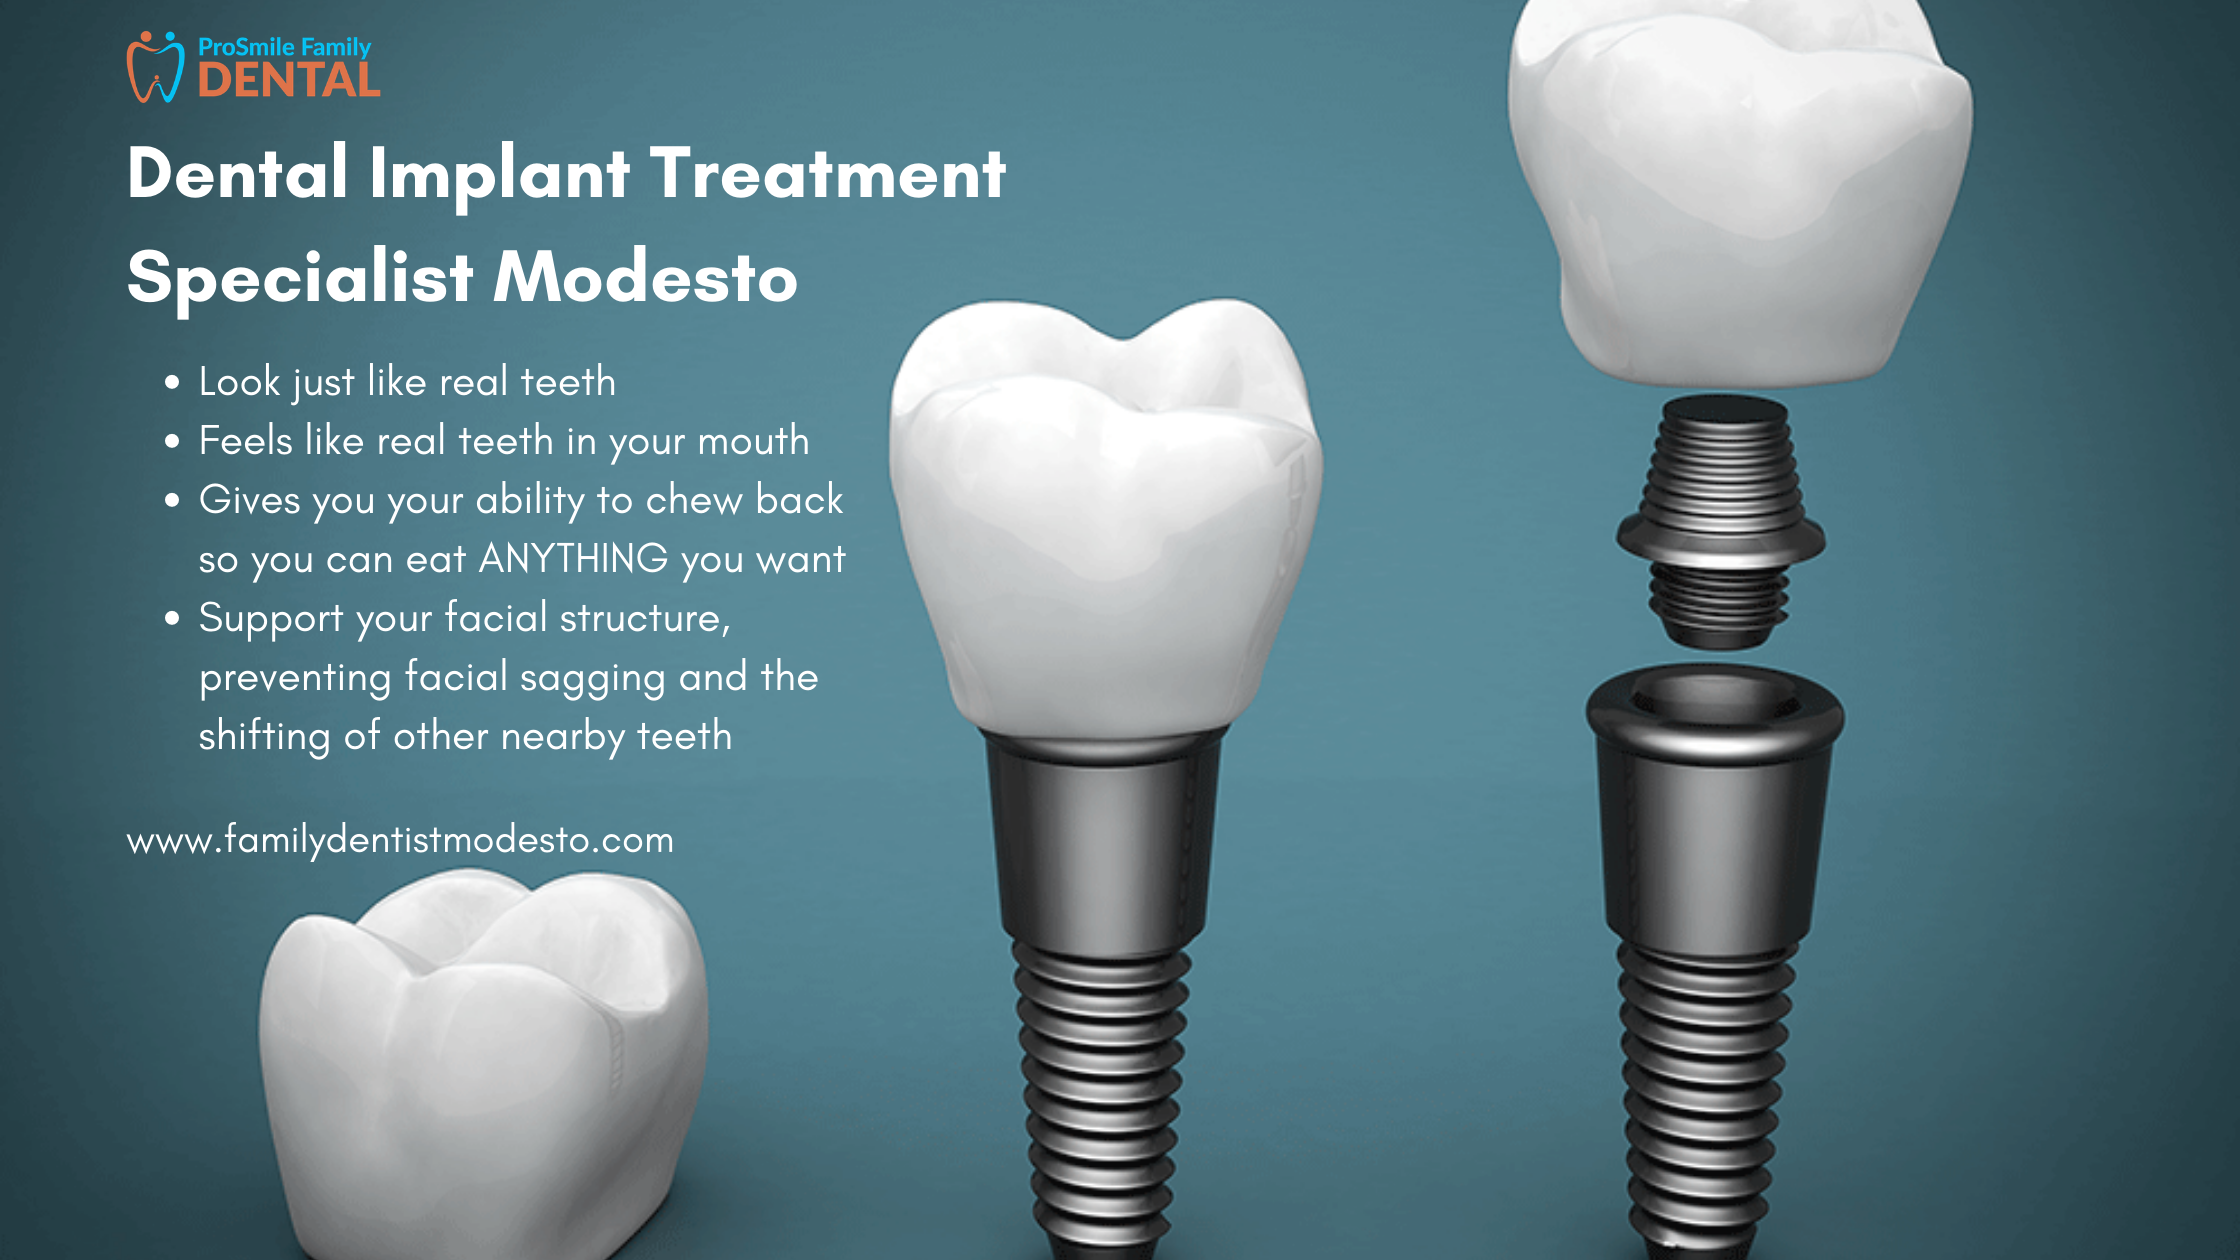 Implant dentist modesto